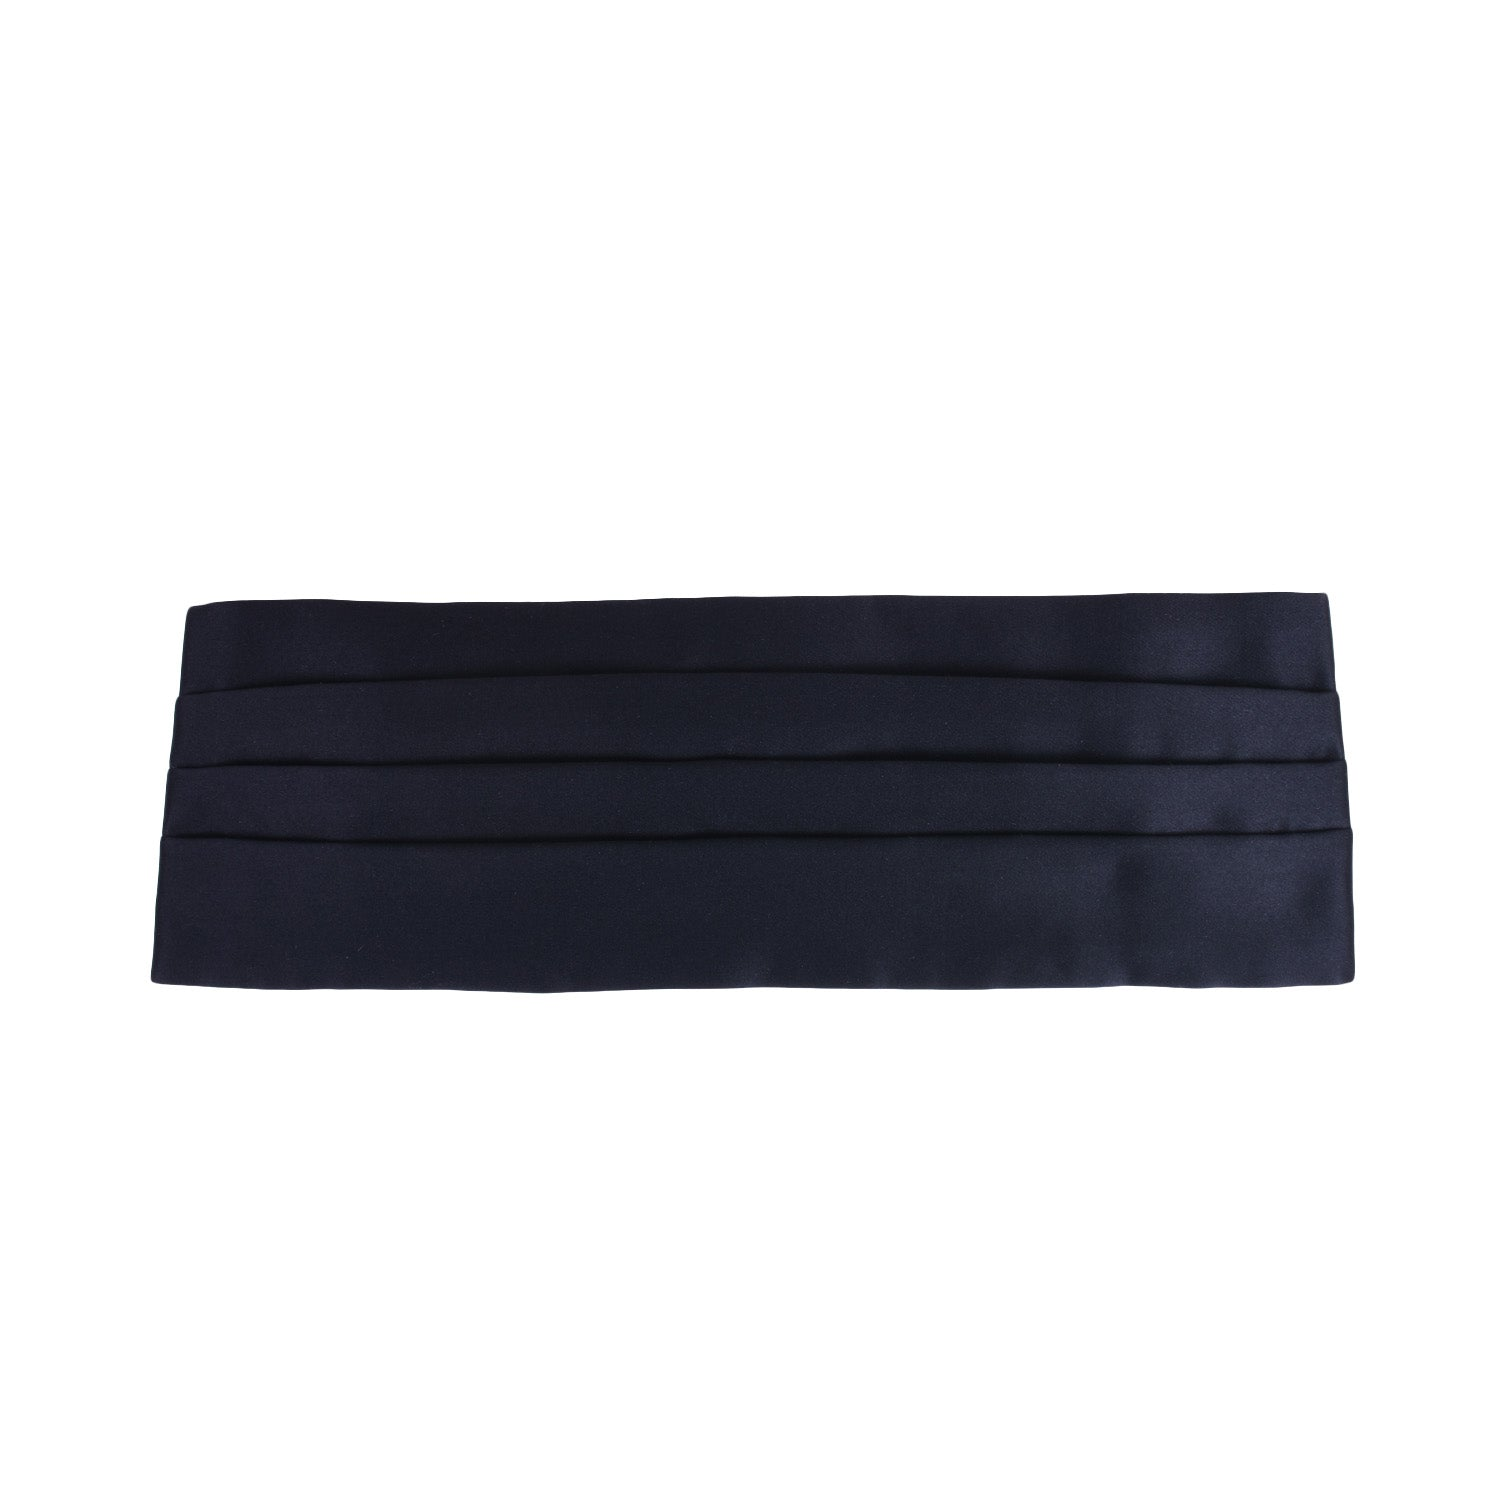 Black Silk 4 Pleat Cummerbund - serafinesilk